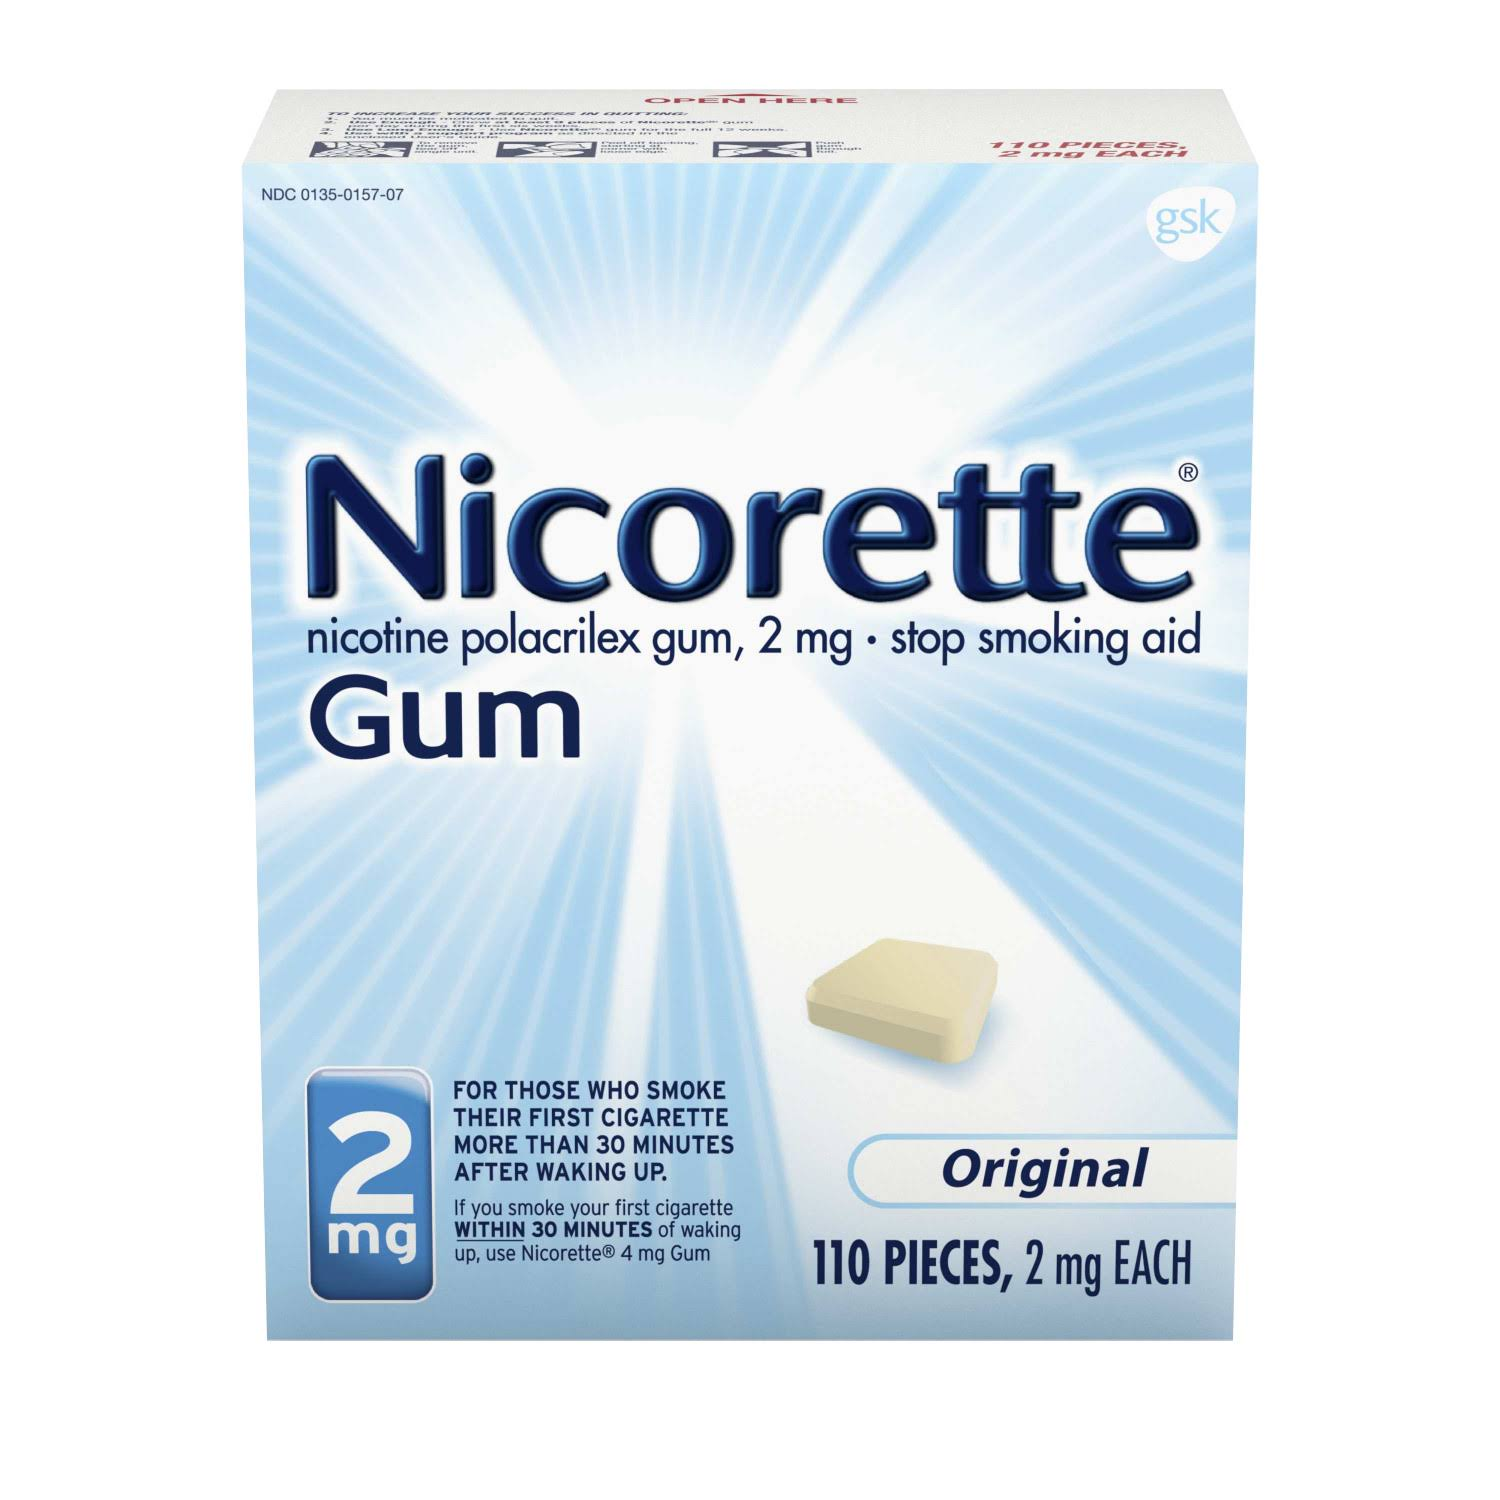 Nicorette Stop Smoking Gum Original - 2mg